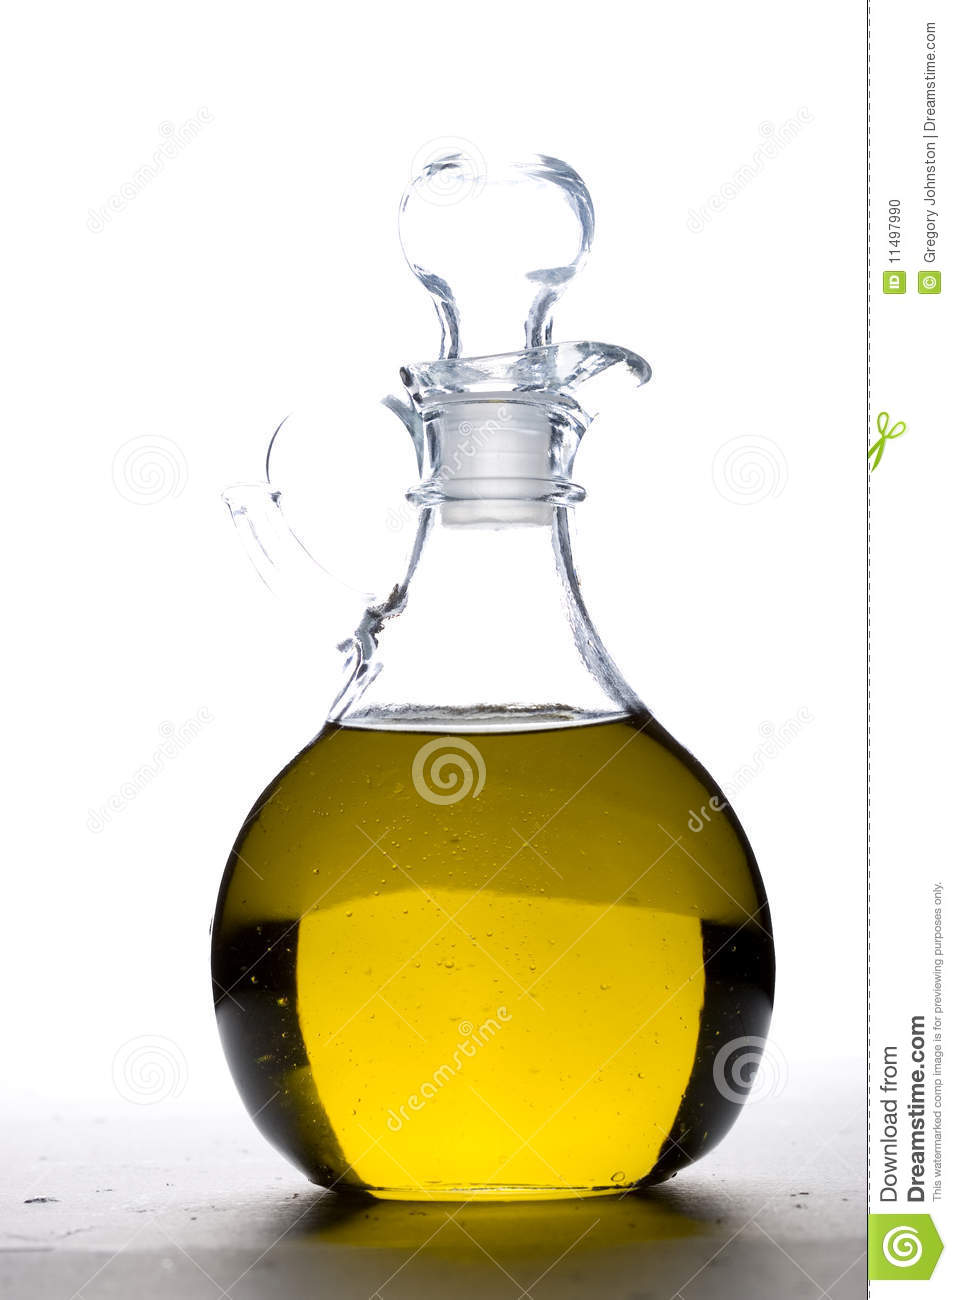 a cruet of olive oil stock photo  image  - cruet glass oil